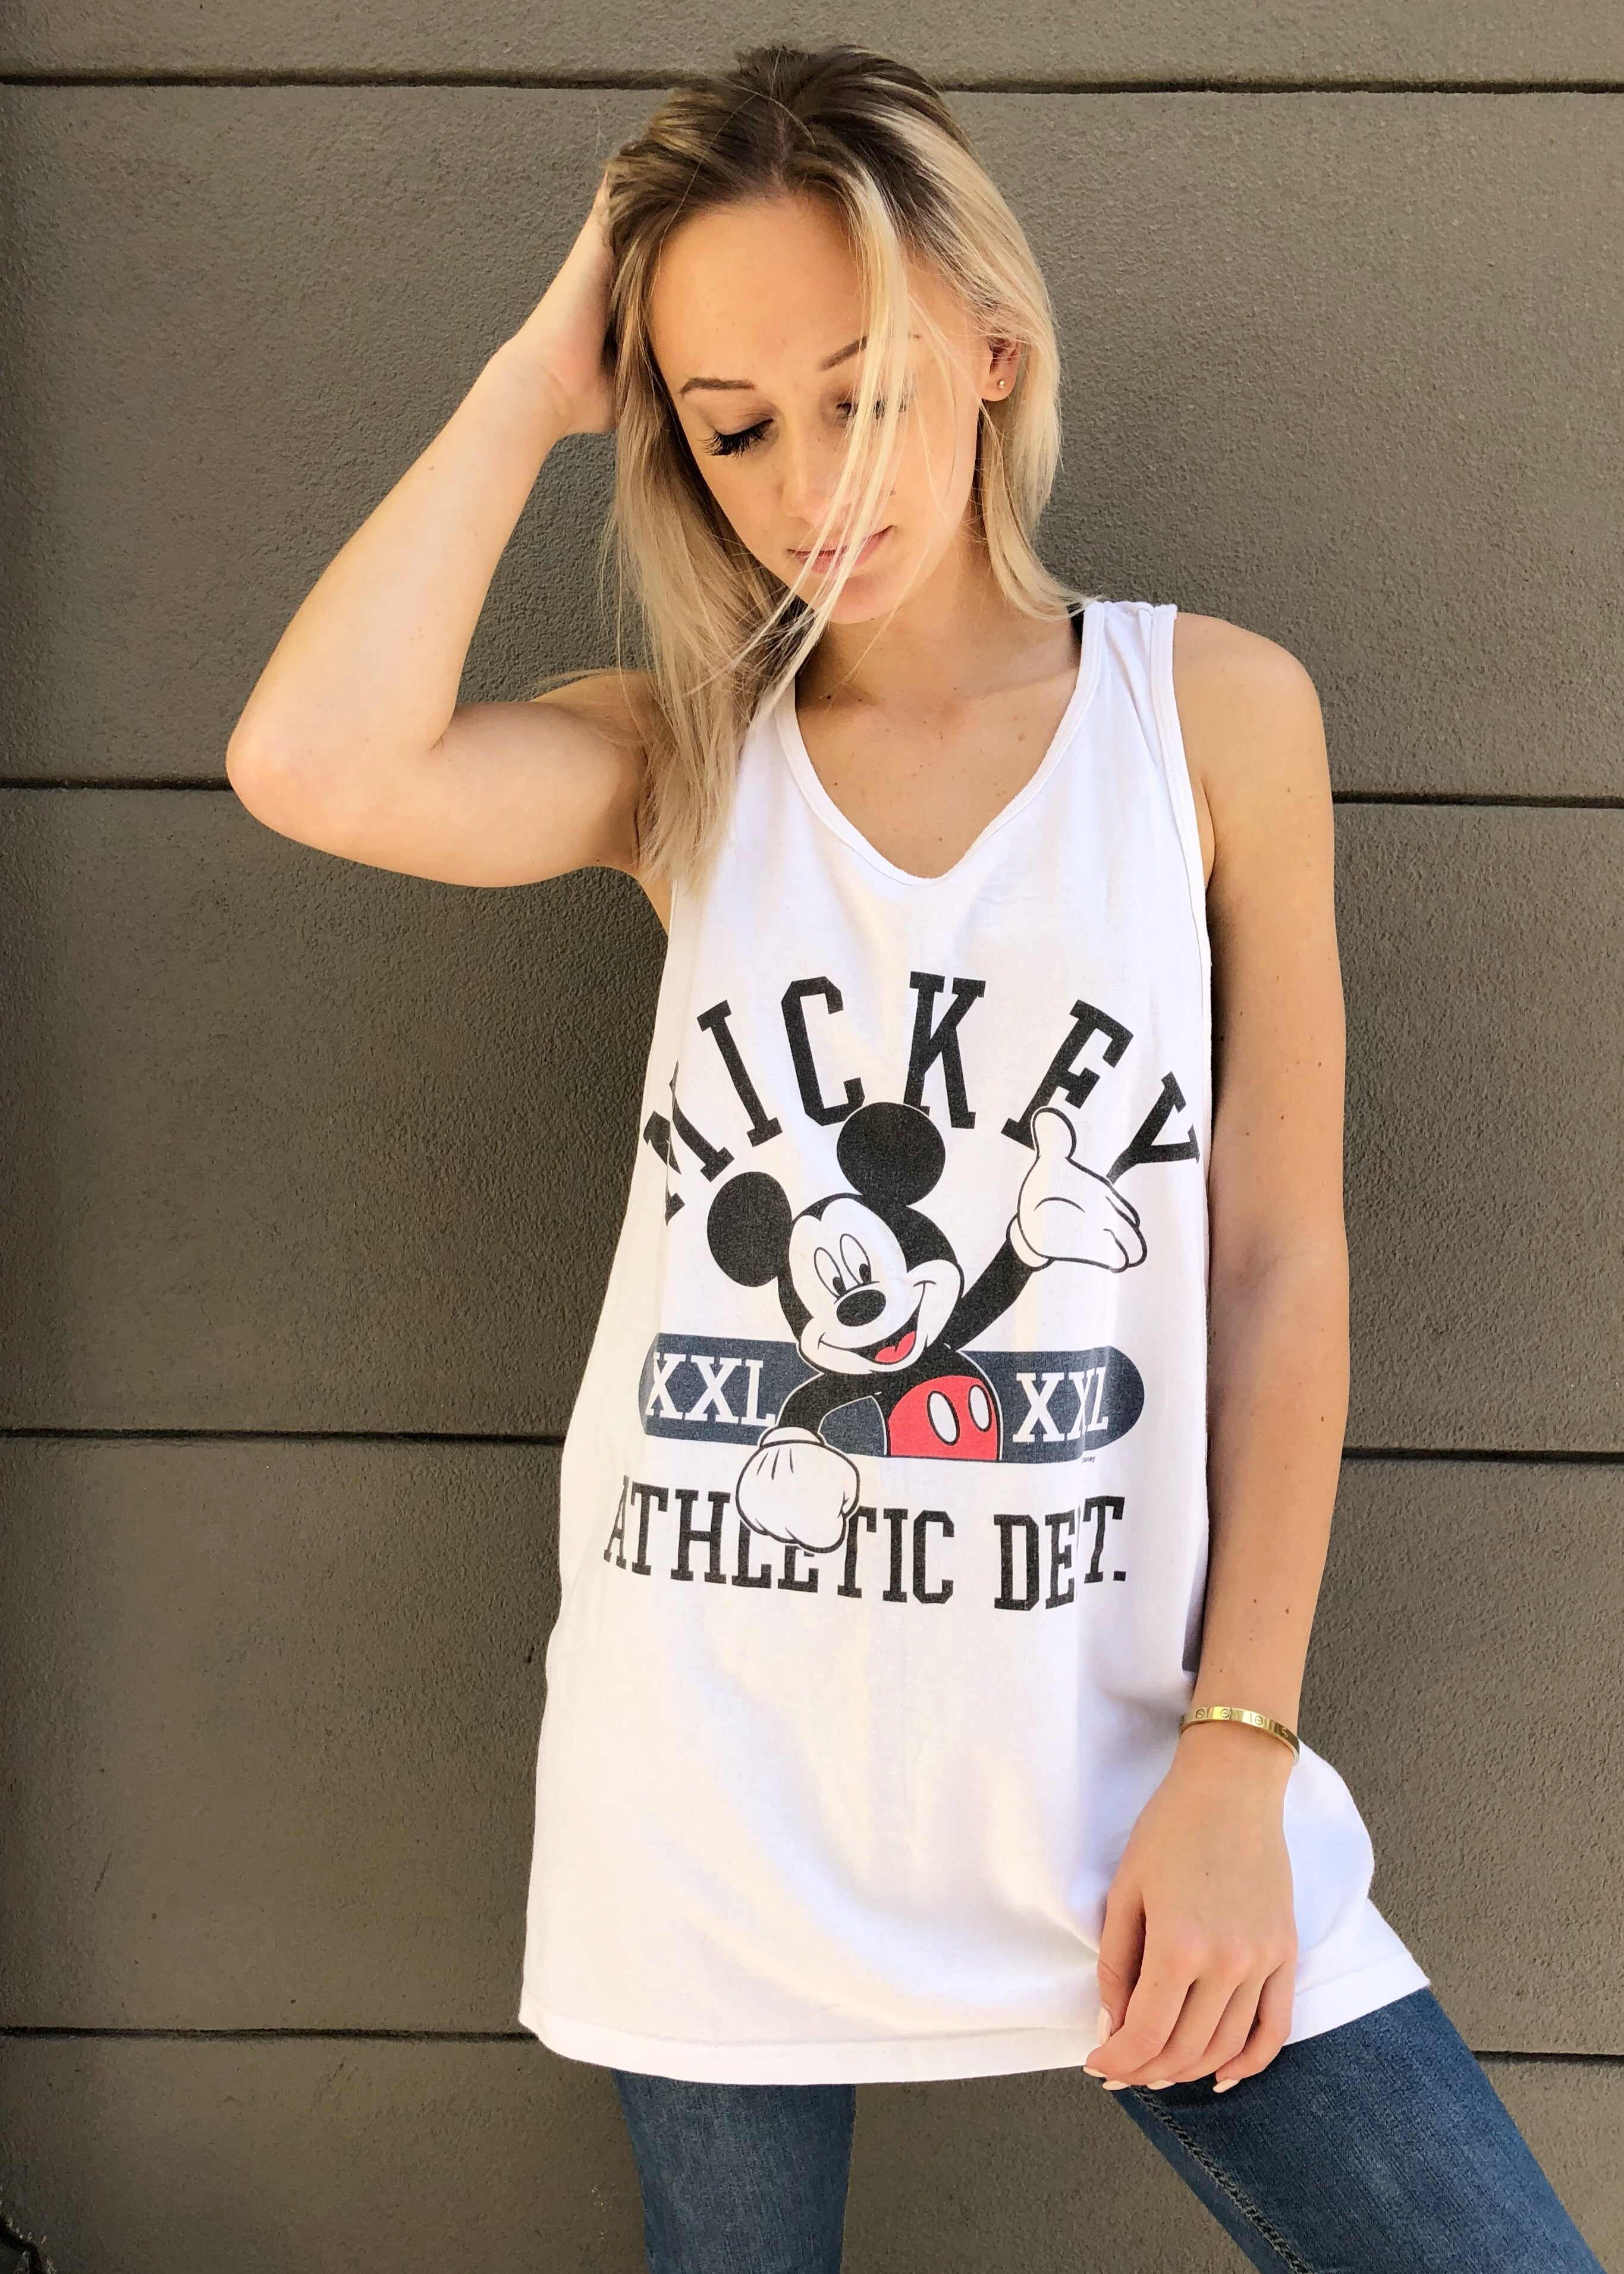 Mickey Athletic Department Tank